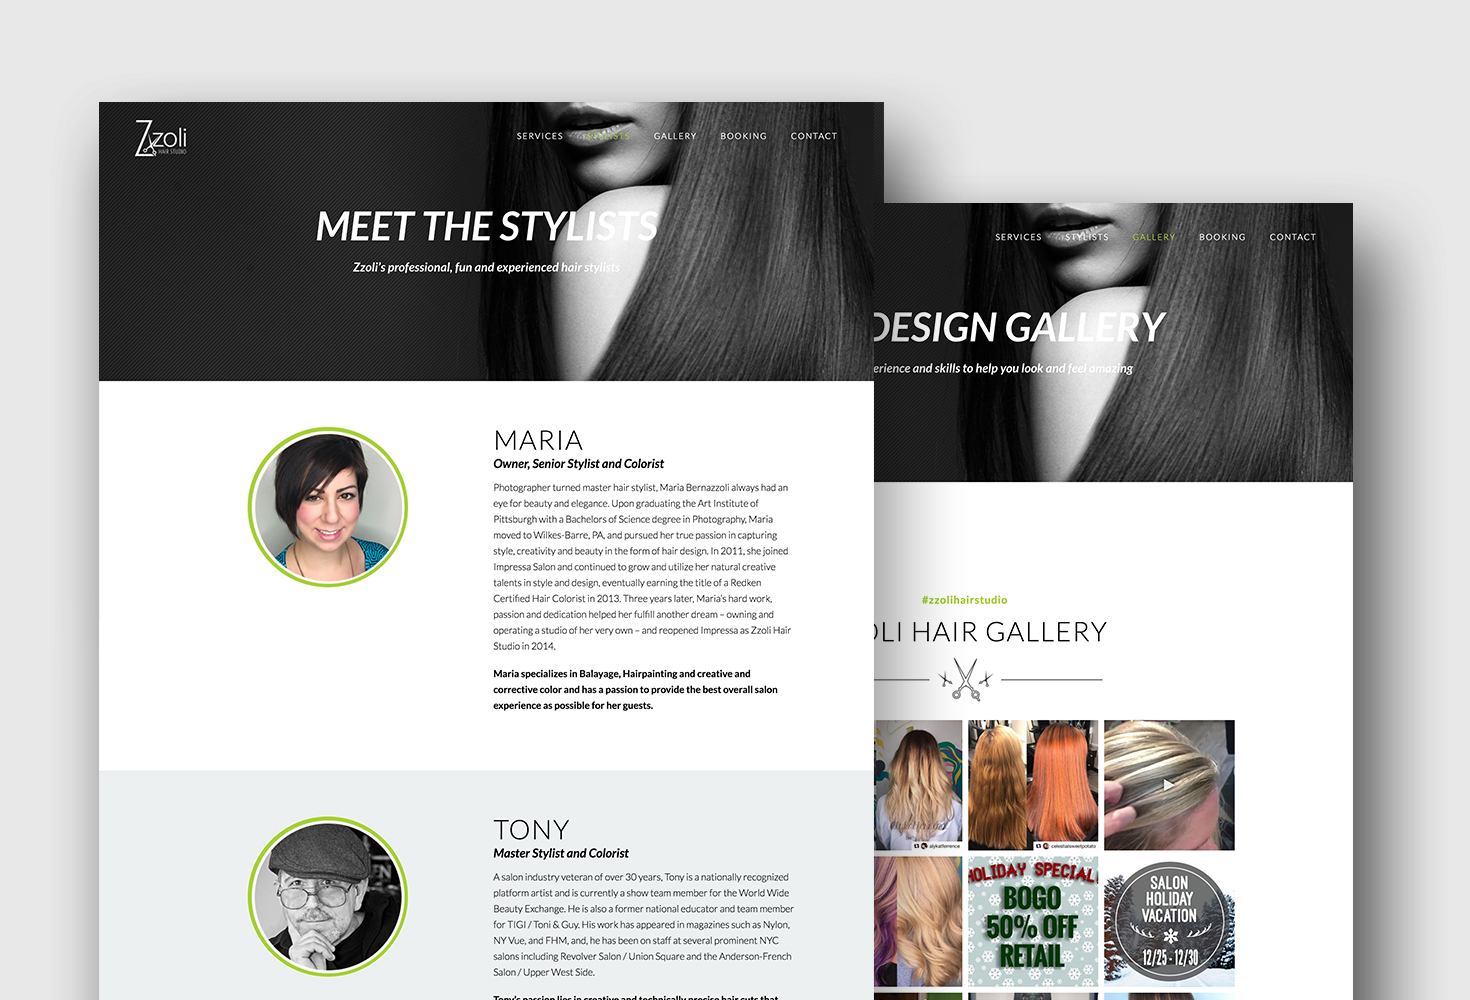 Website Design Image Galleries